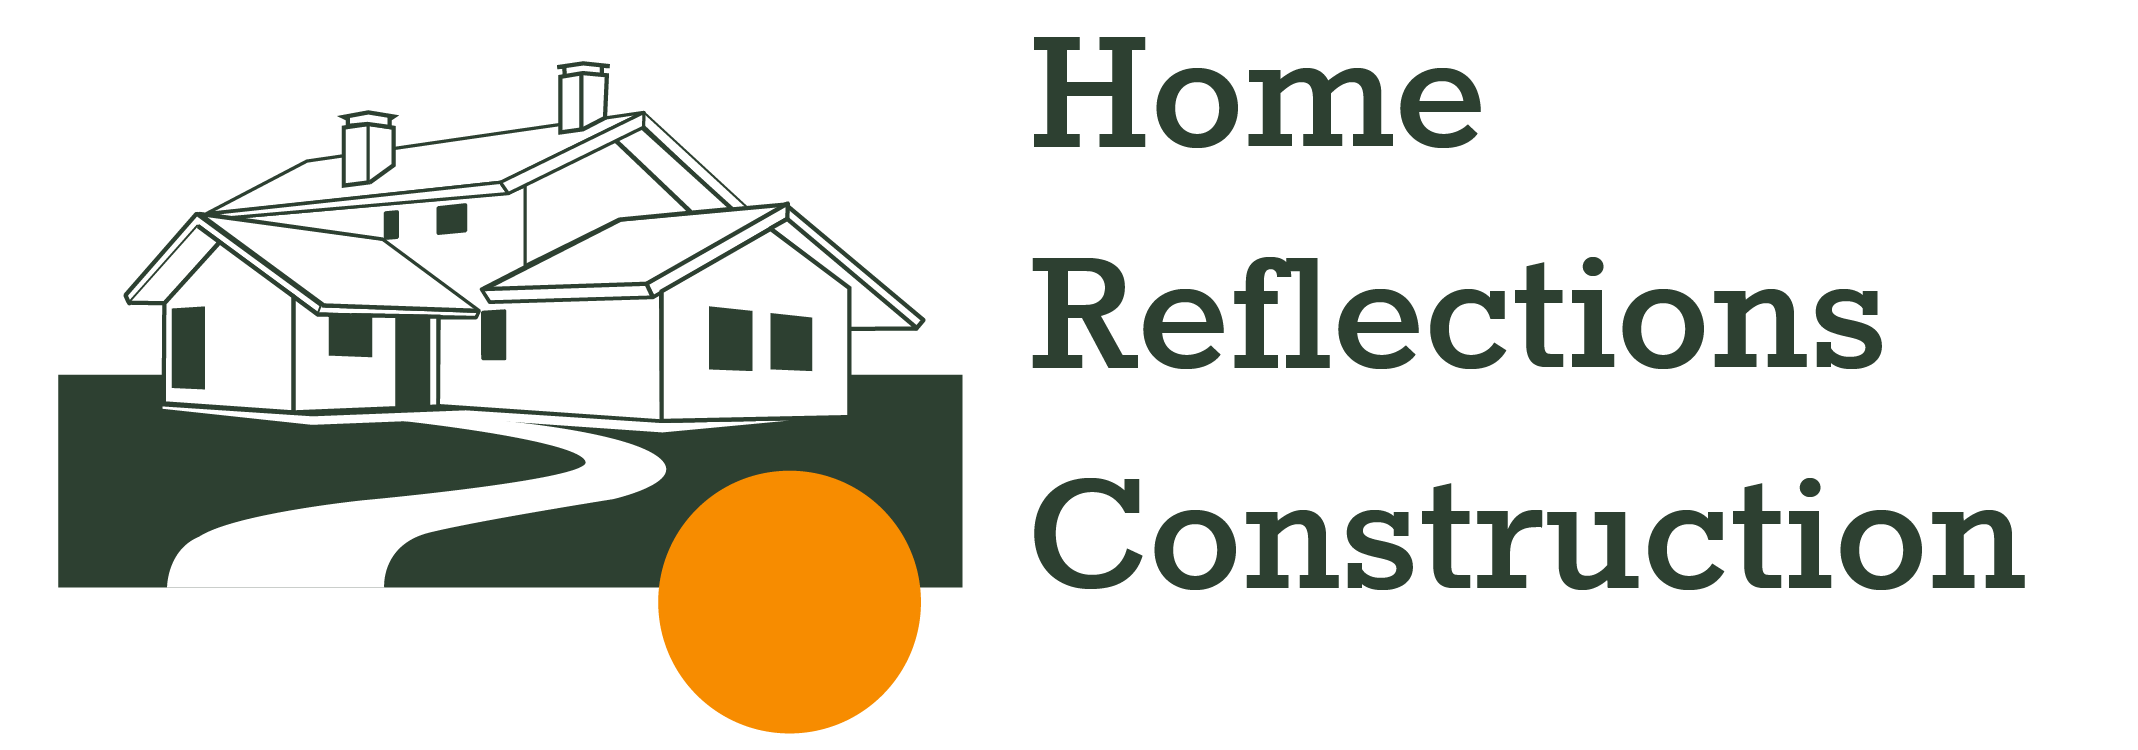 Home Reflections Construction Home Reflection Remodeling